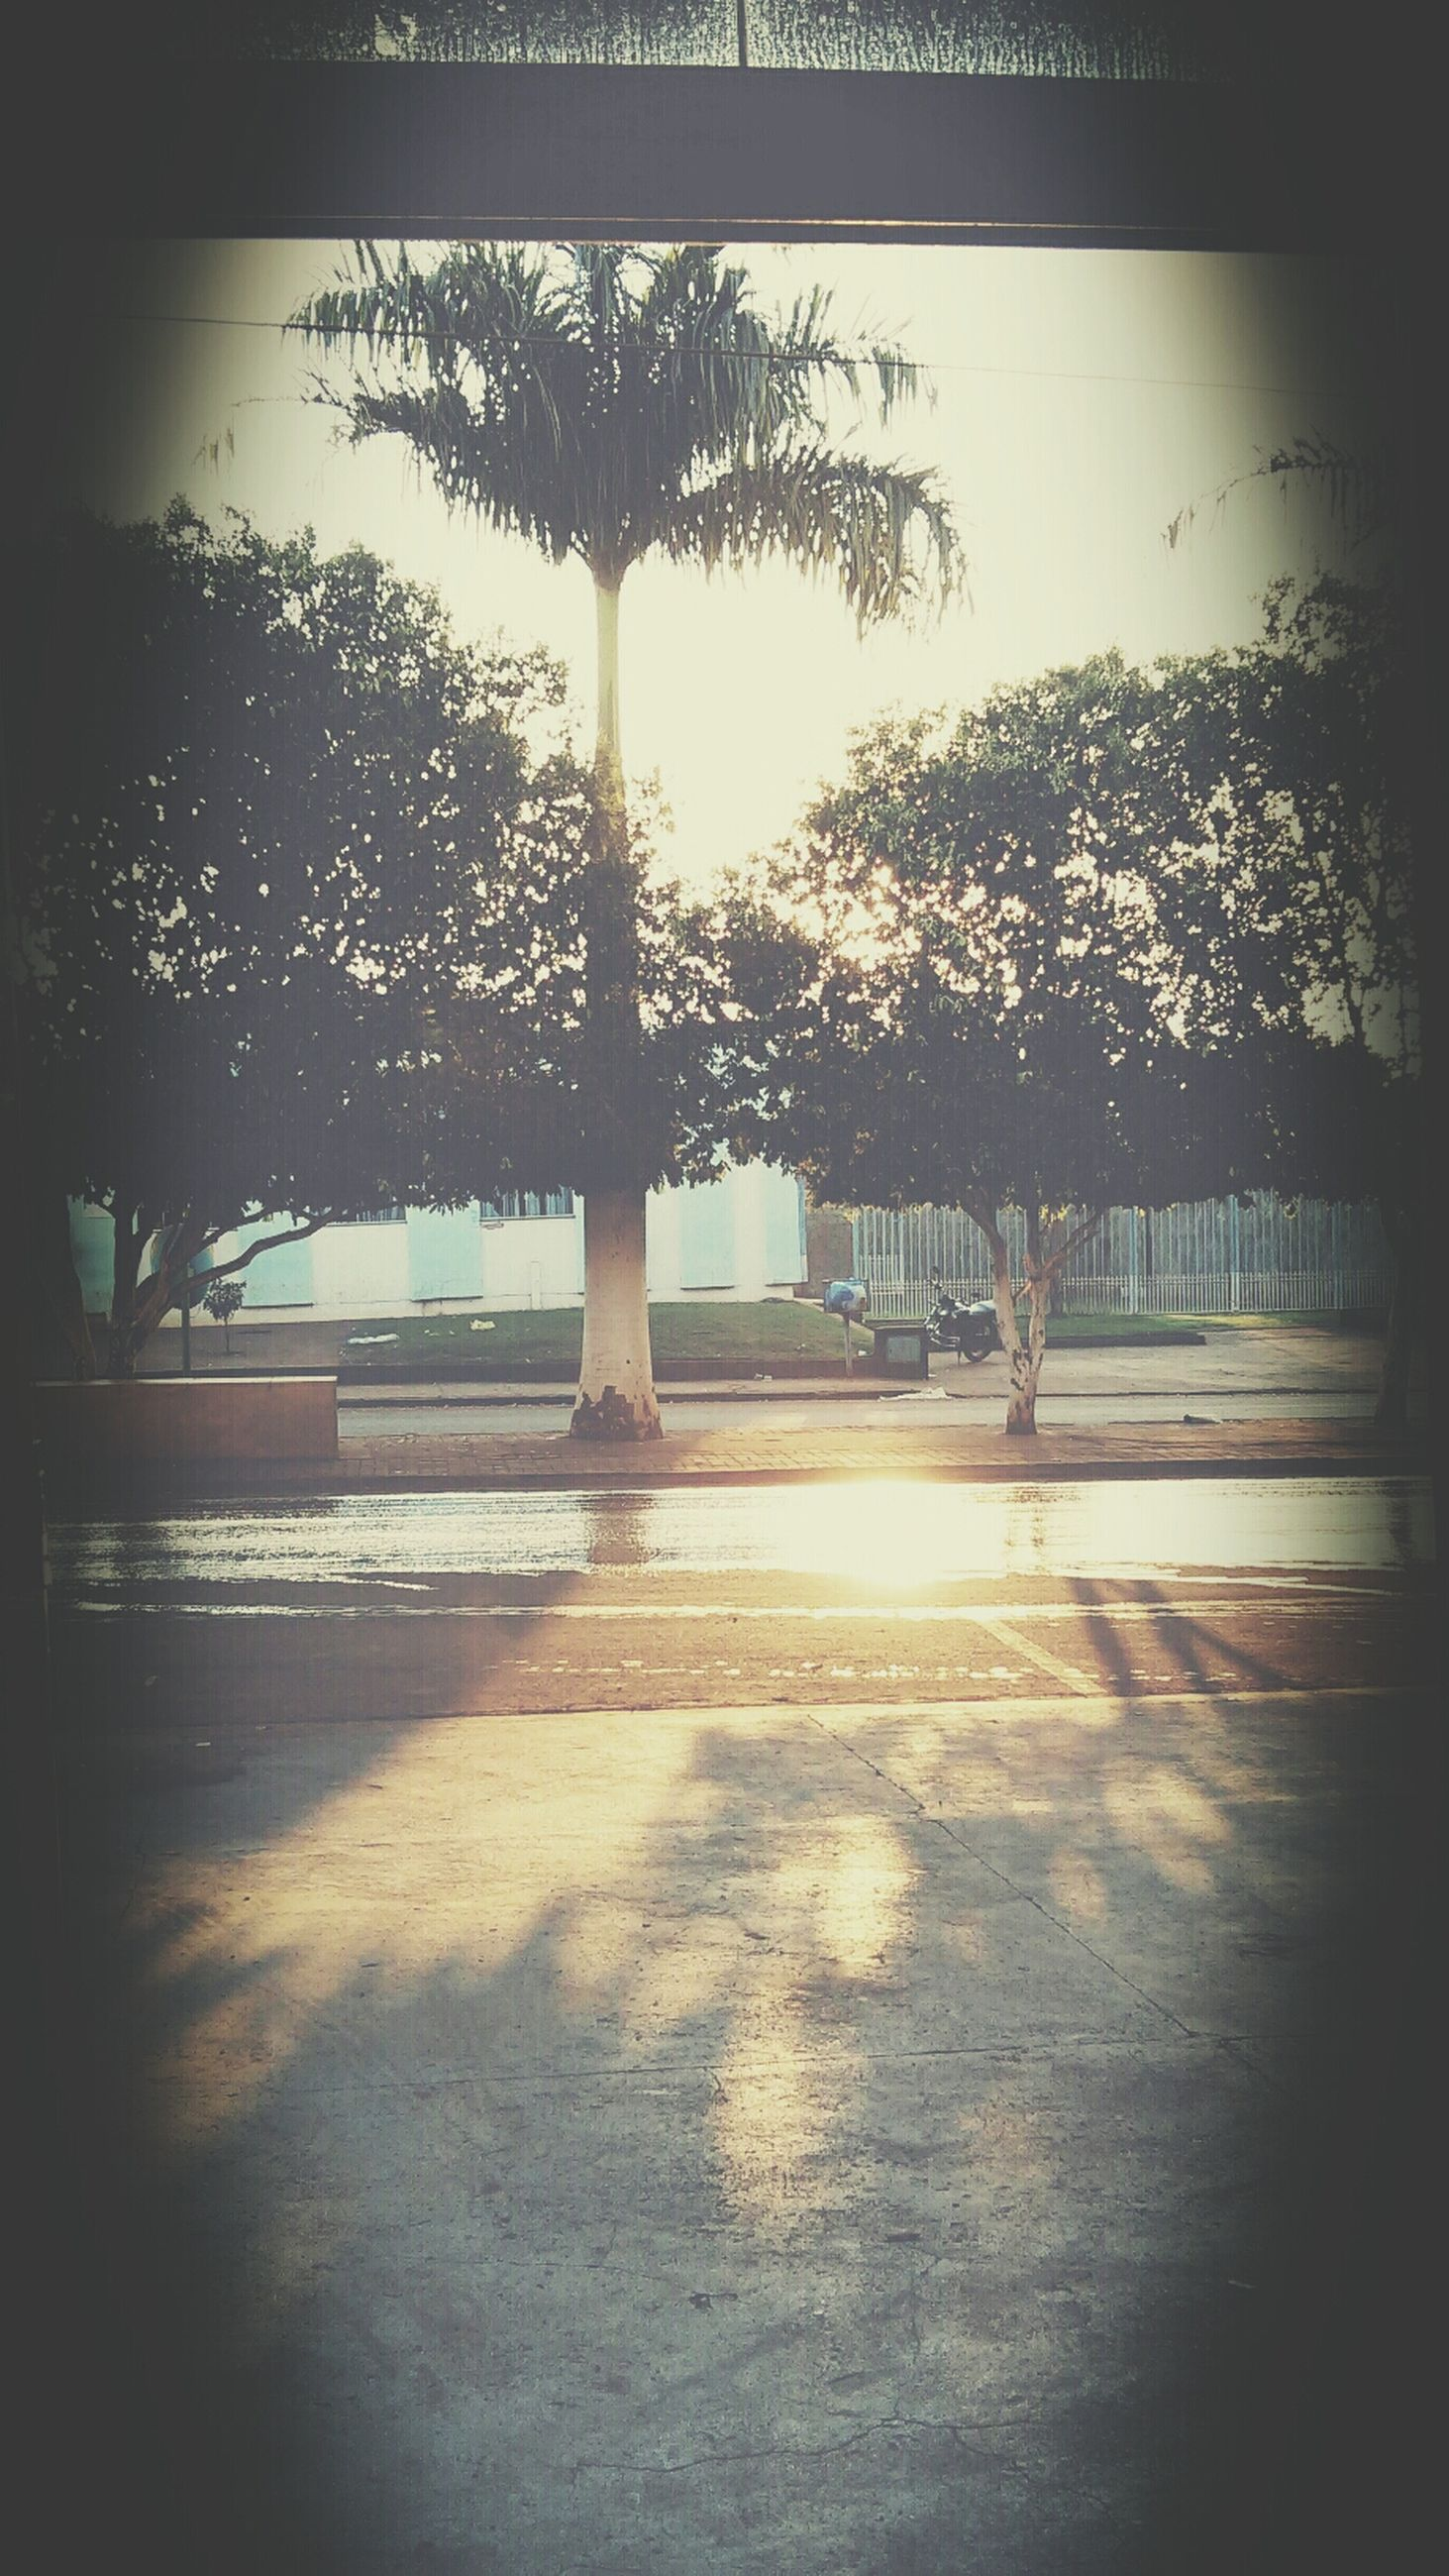 tree, sunlight, shadow, indoors, silhouette, tranquility, nature, water, tree trunk, growth, built structure, day, sun, reflection, bench, empty, tranquil scene, table, window, no people